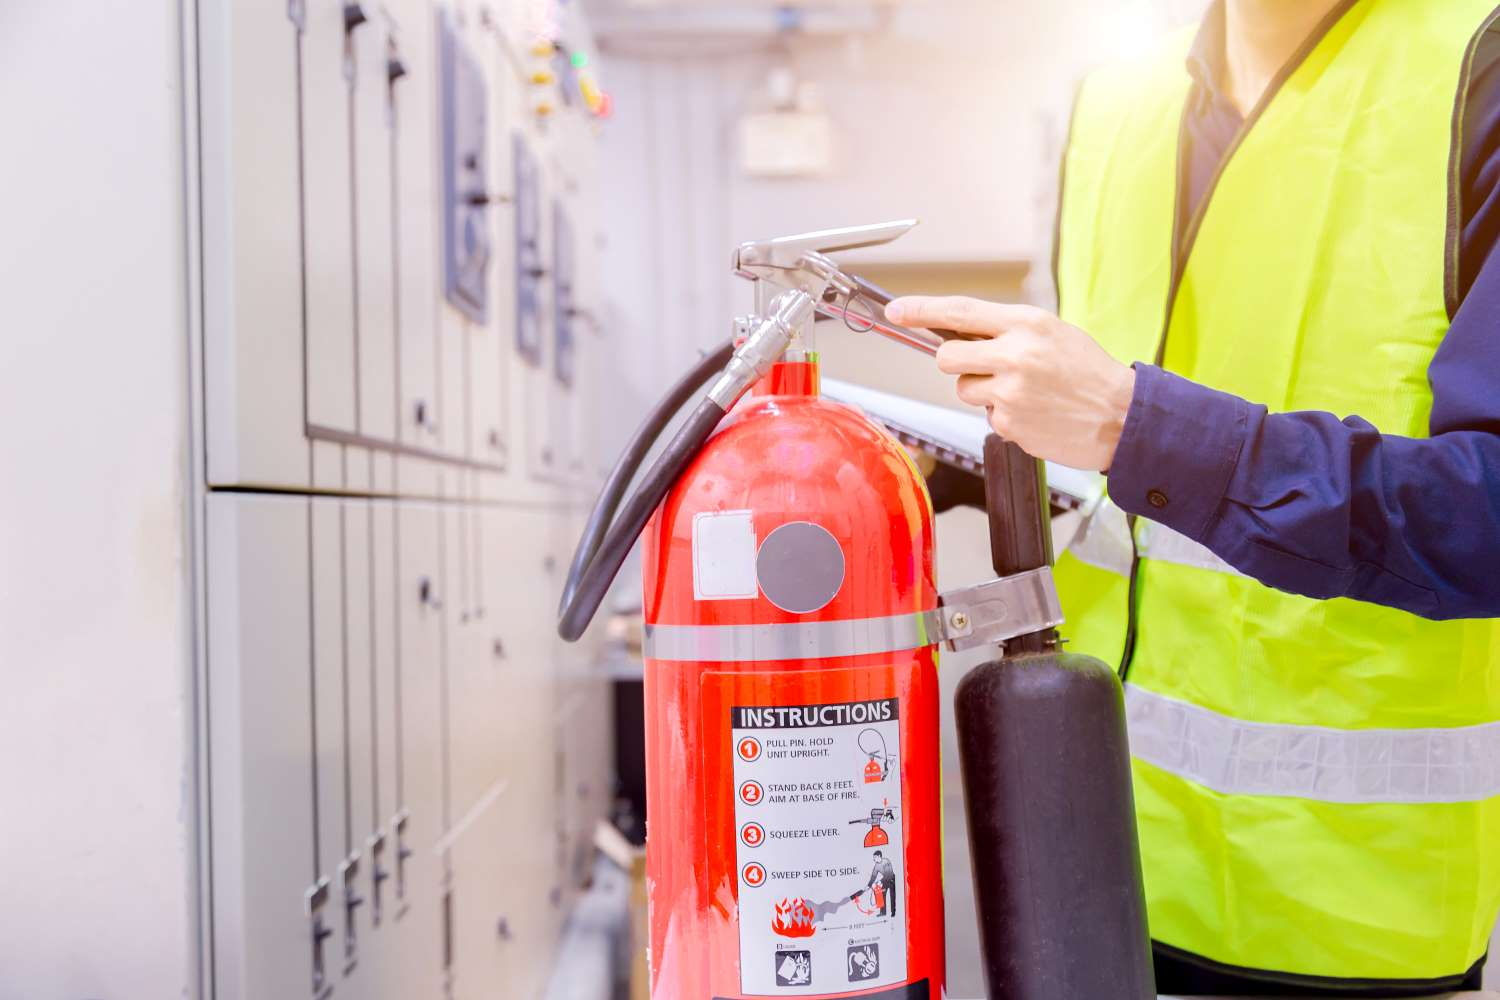 NSI approves fire safety companies providing services in accordance with BAFE schemes